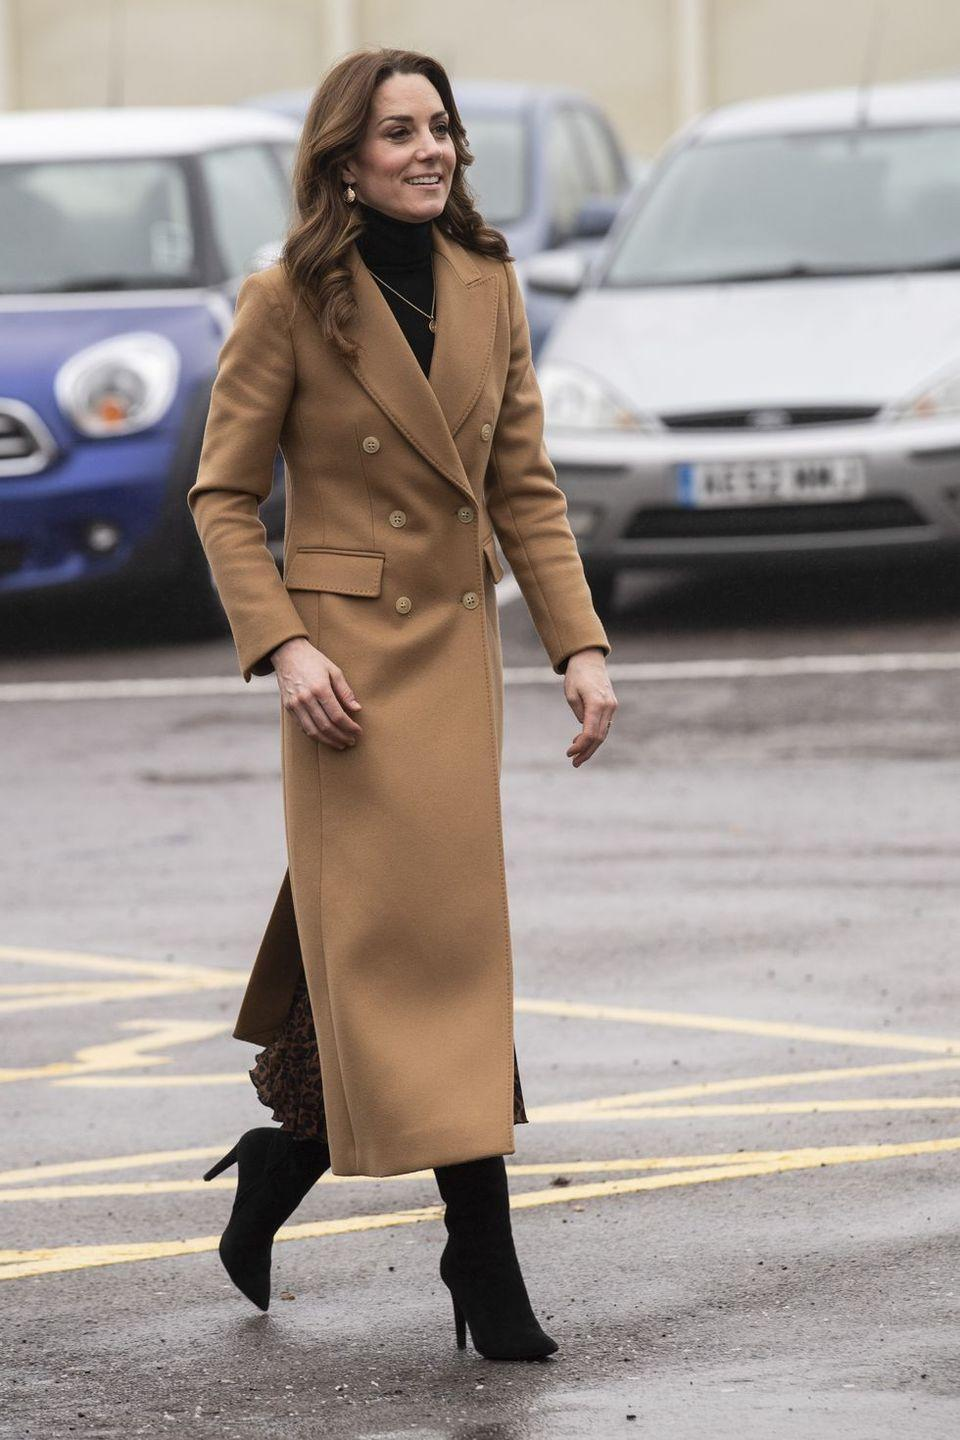 """<p>The Duchess of Cambridge visits HMP Send. She wore a black turtleneck and camel Chesterfield coat by <a href=""""https://www.massimodutti.com/us/"""" rel=""""nofollow noopener"""" target=""""_blank"""" data-ylk=""""slk:Massimo Dutti"""" class=""""link rapid-noclick-resp"""">Massimo Dutti</a> with a pleated leopard-print skirt by Zara. </p>"""